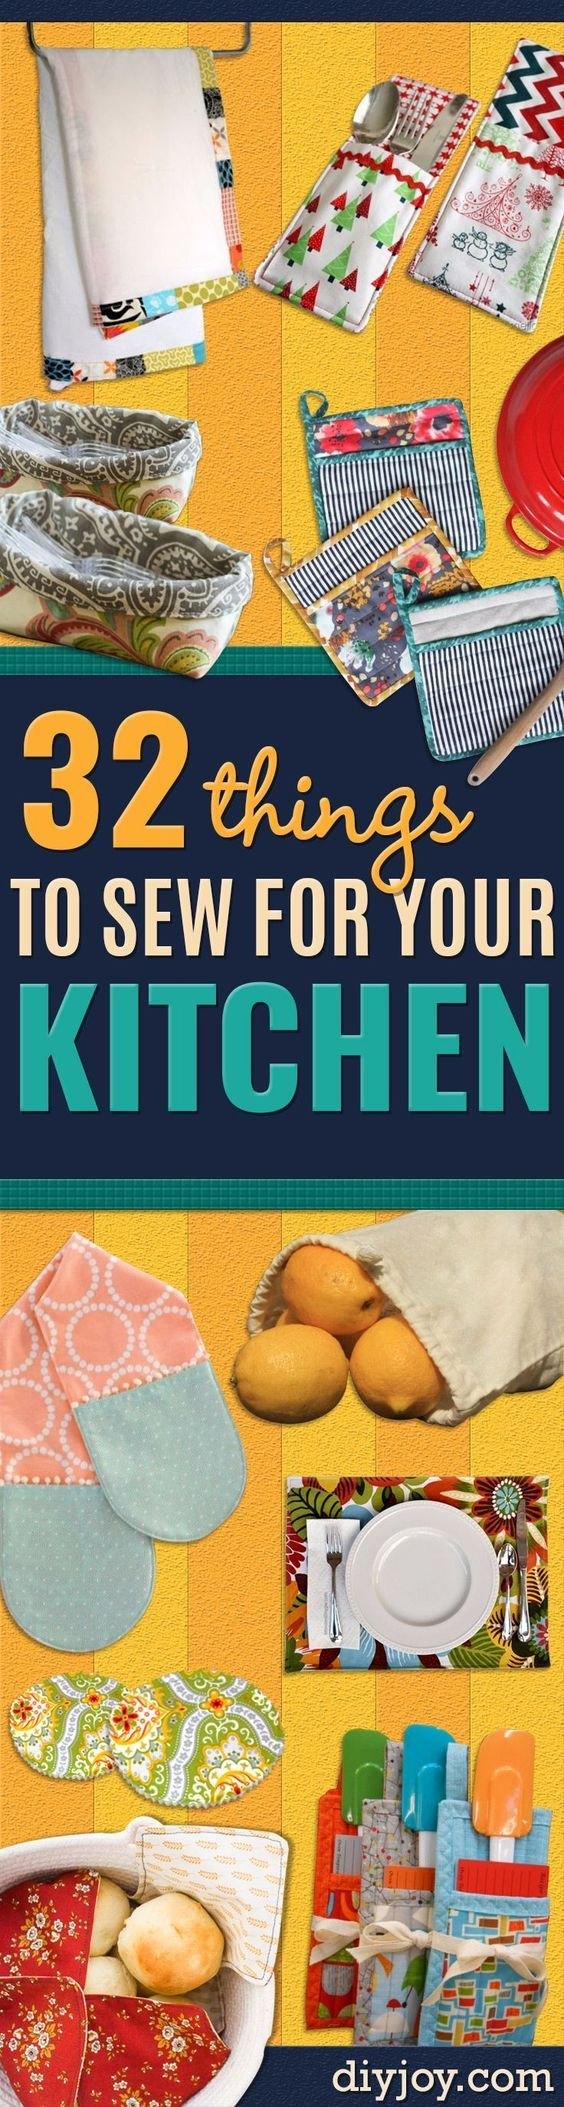 32 Great Things To Sew For Your KitchenEyja